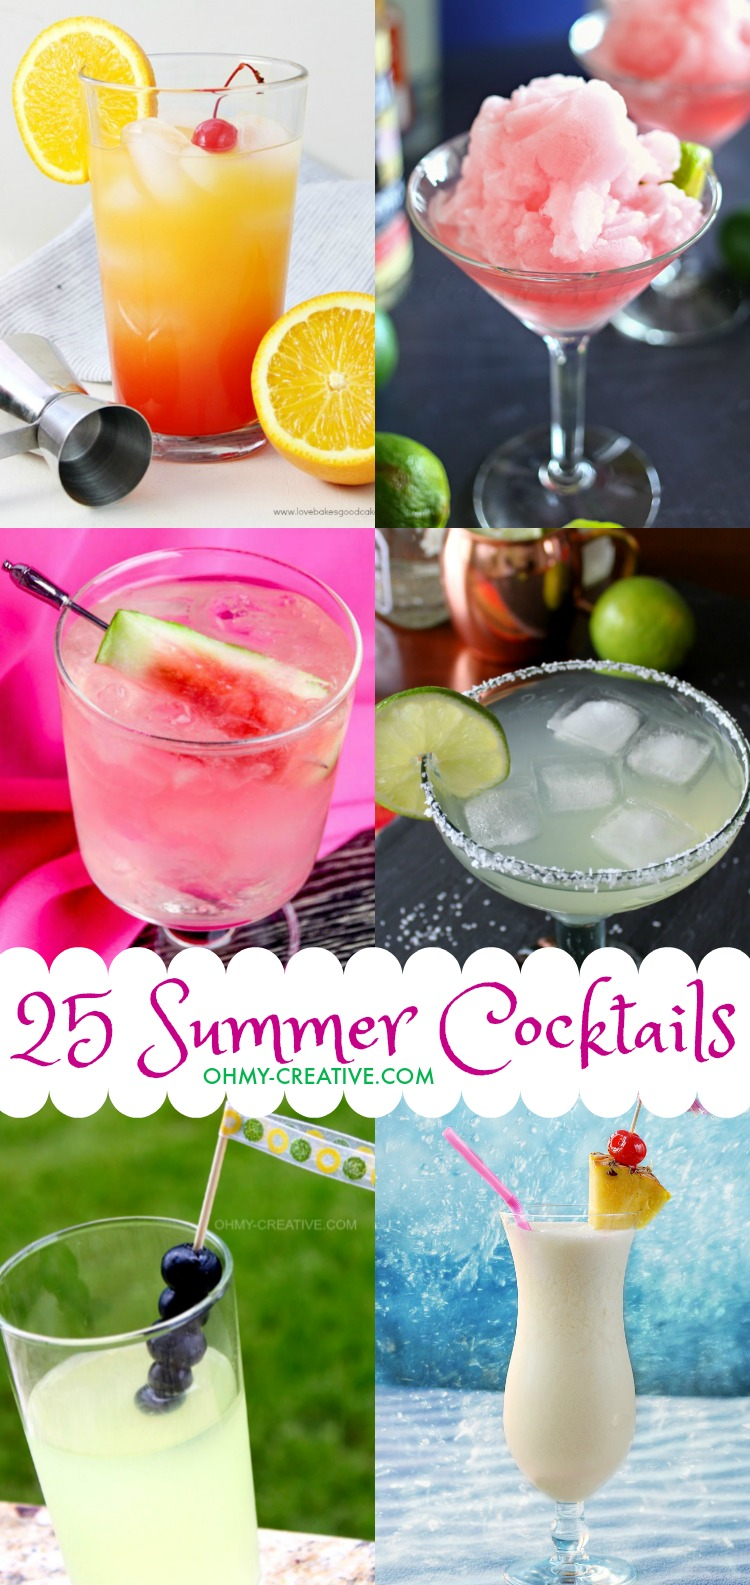 25 Fun Summer Cocktails - Oh My Creative